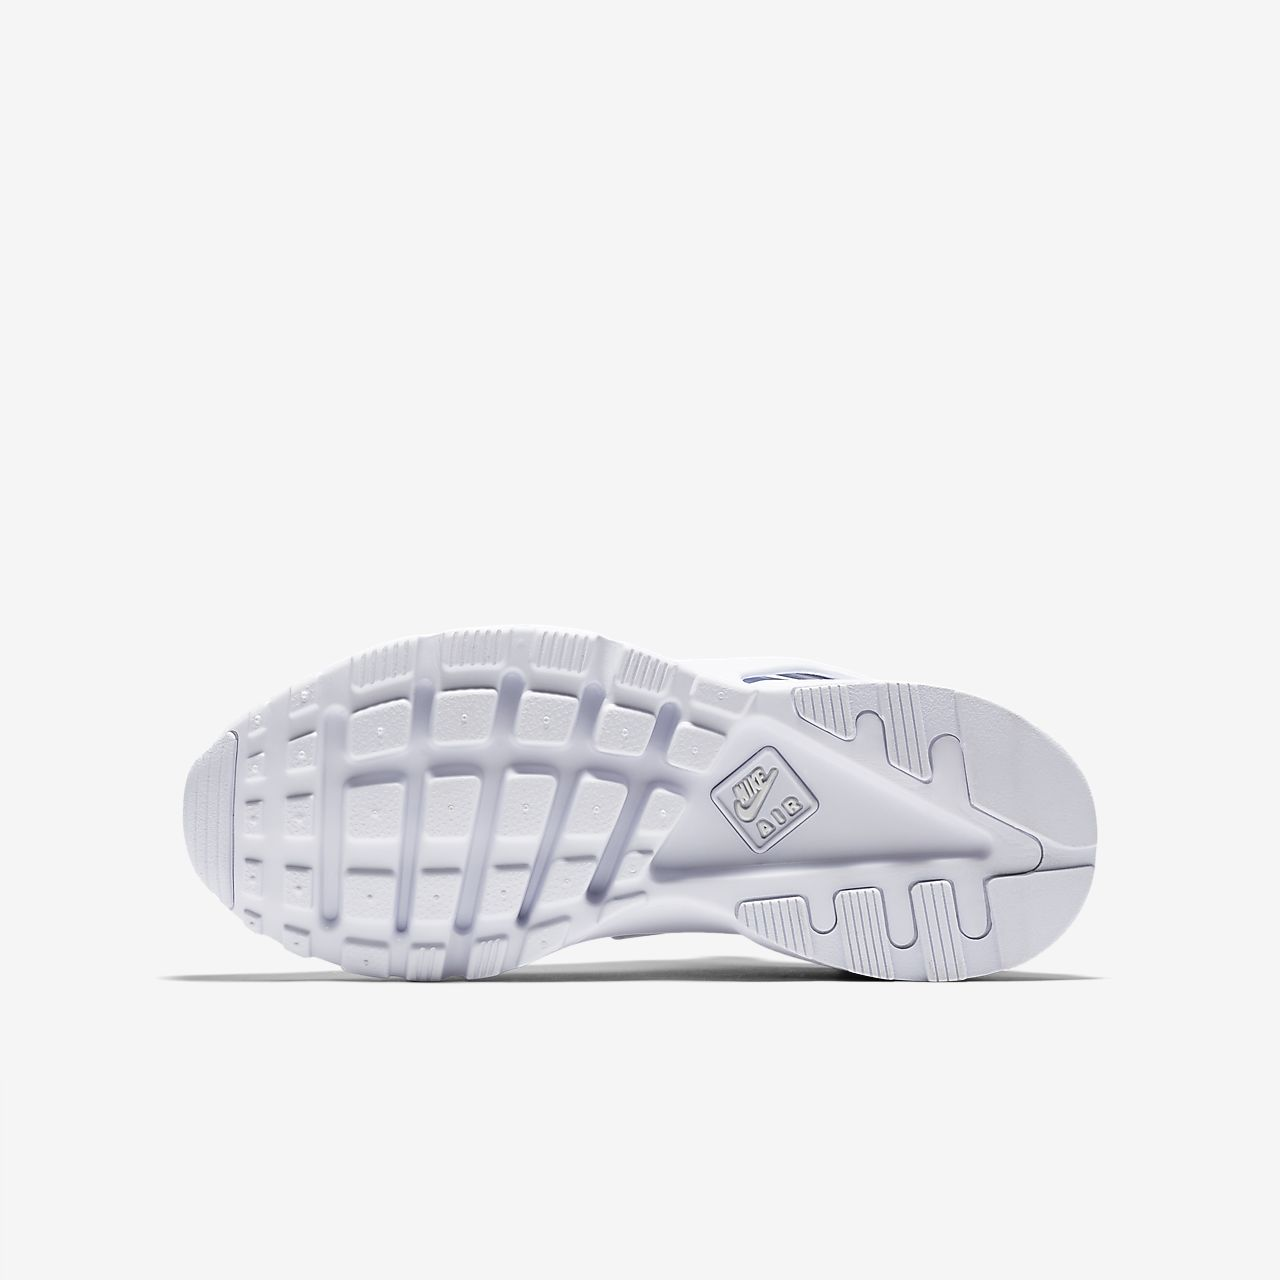 Nike Air Huarache Ultra Dance Shoes For Boys White